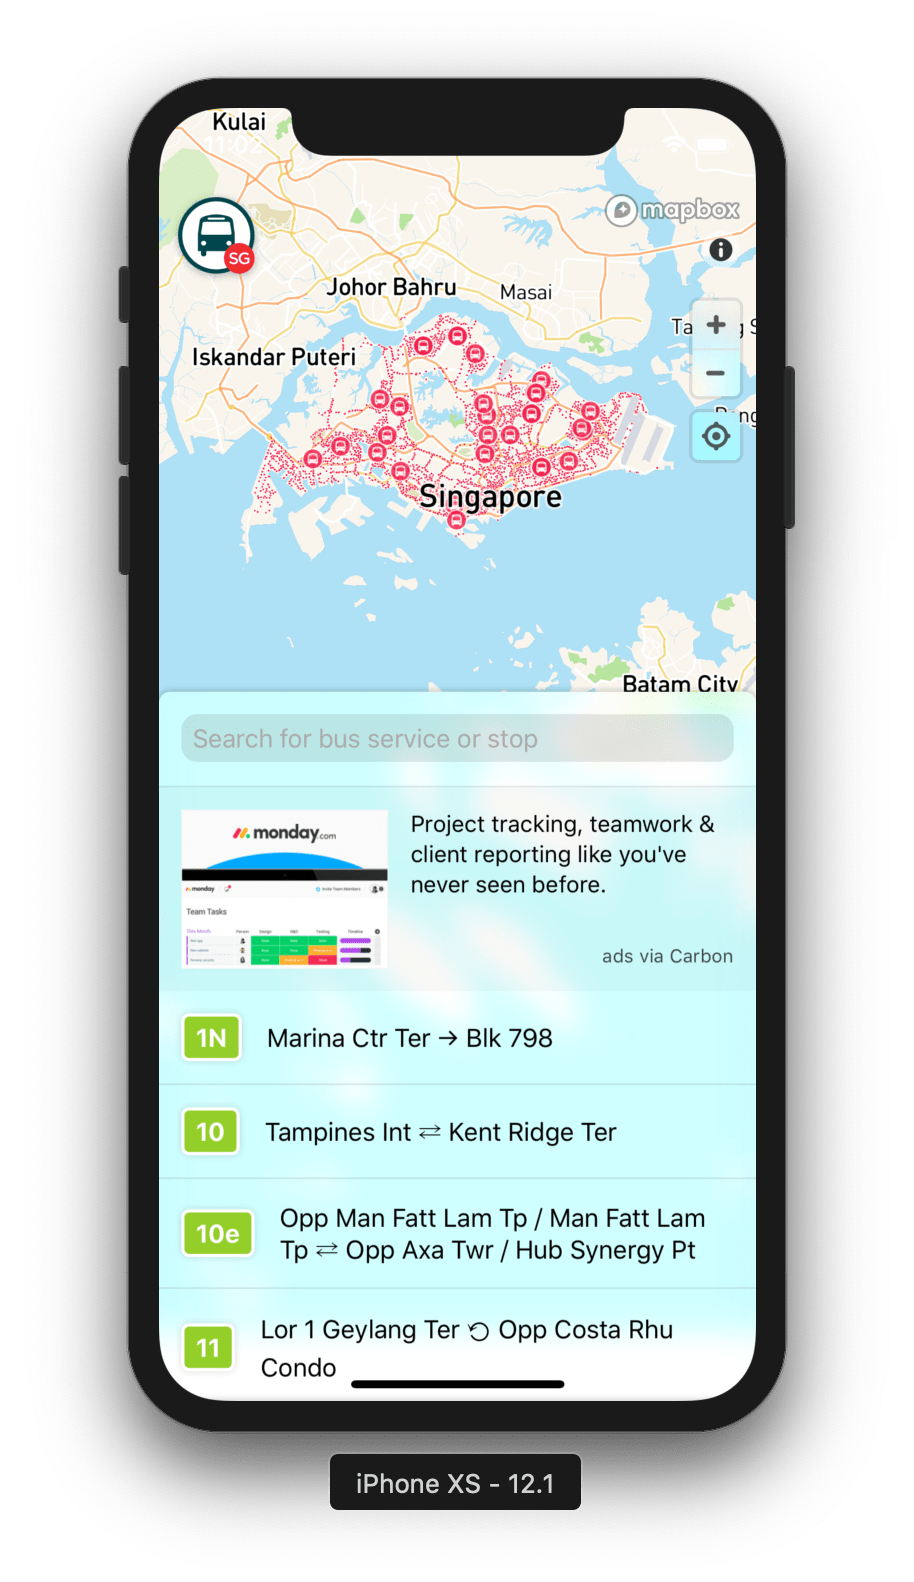 Building BusRouter SG – Lim Chee Aun